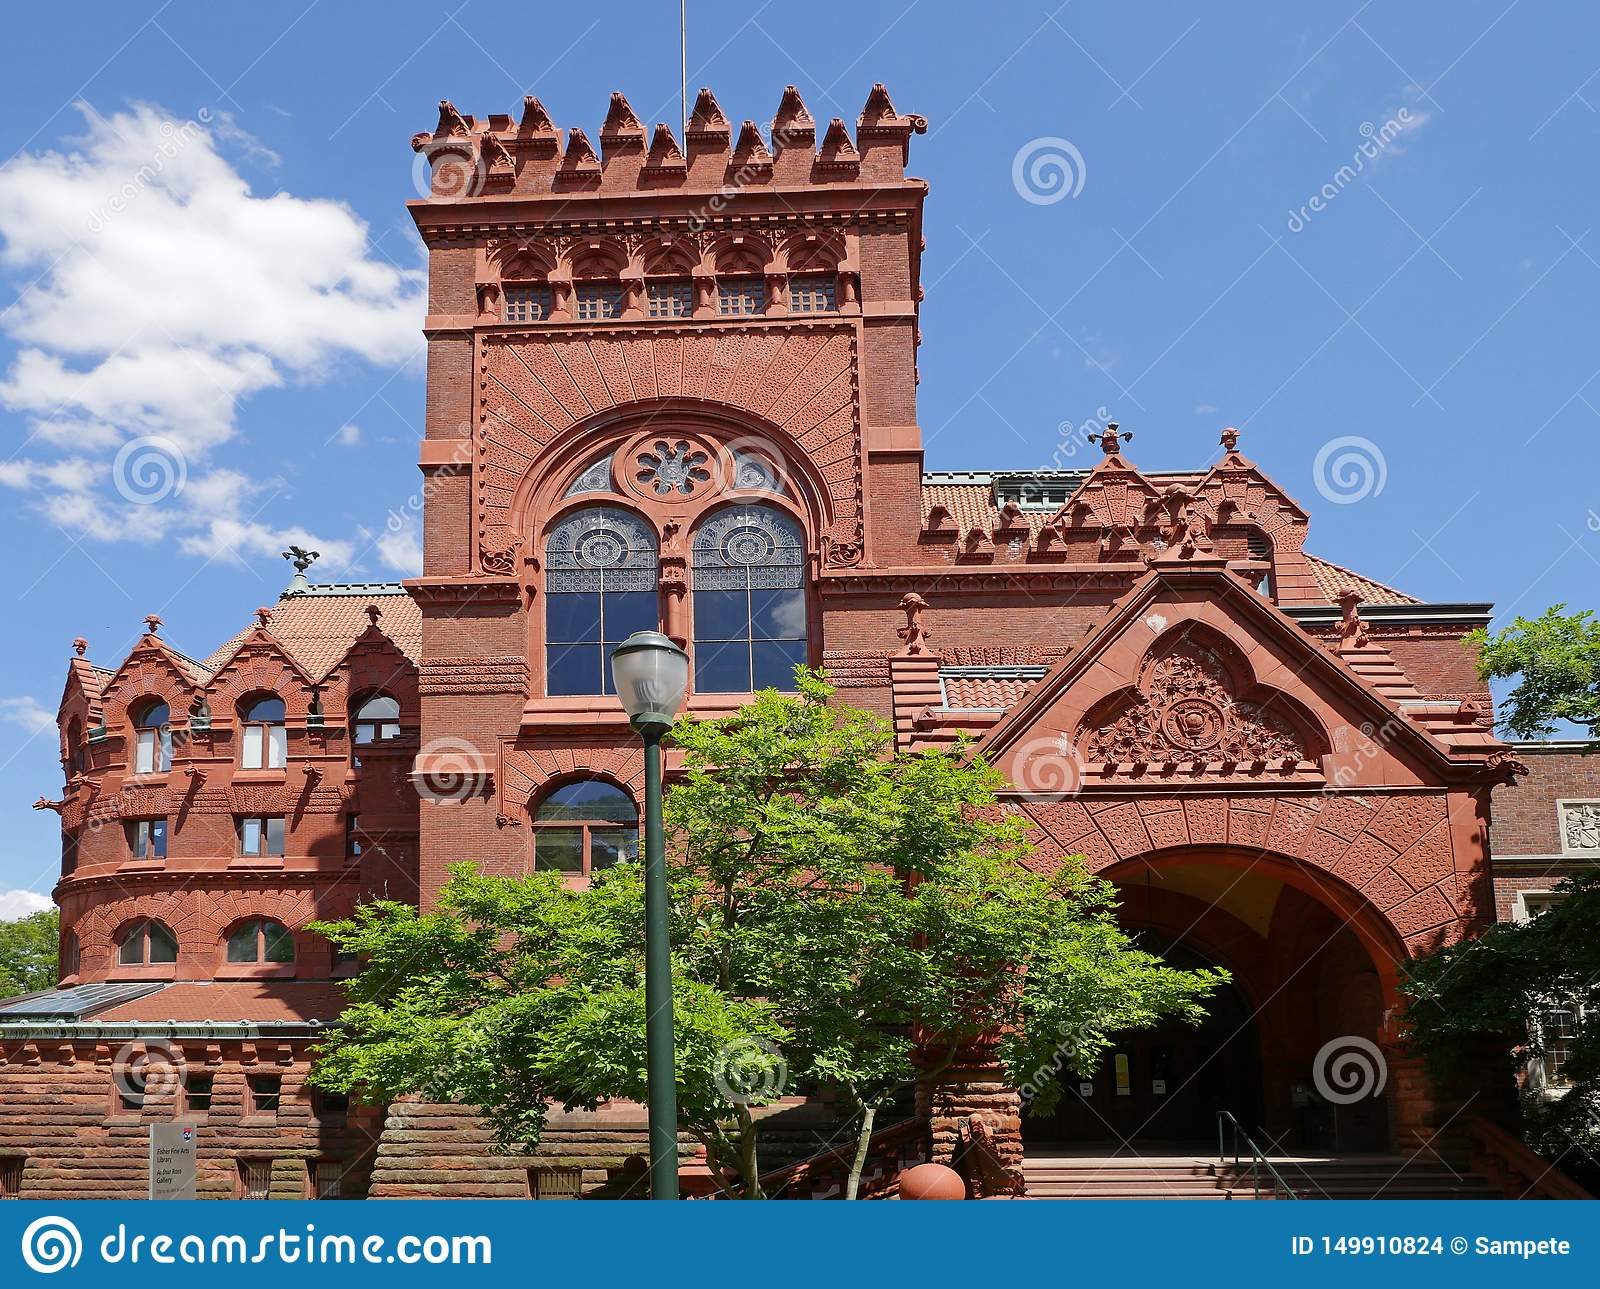 Fine Arts Library At The University Of Pennsylvania Editorial Stock Image Image Of Fine National 149910824